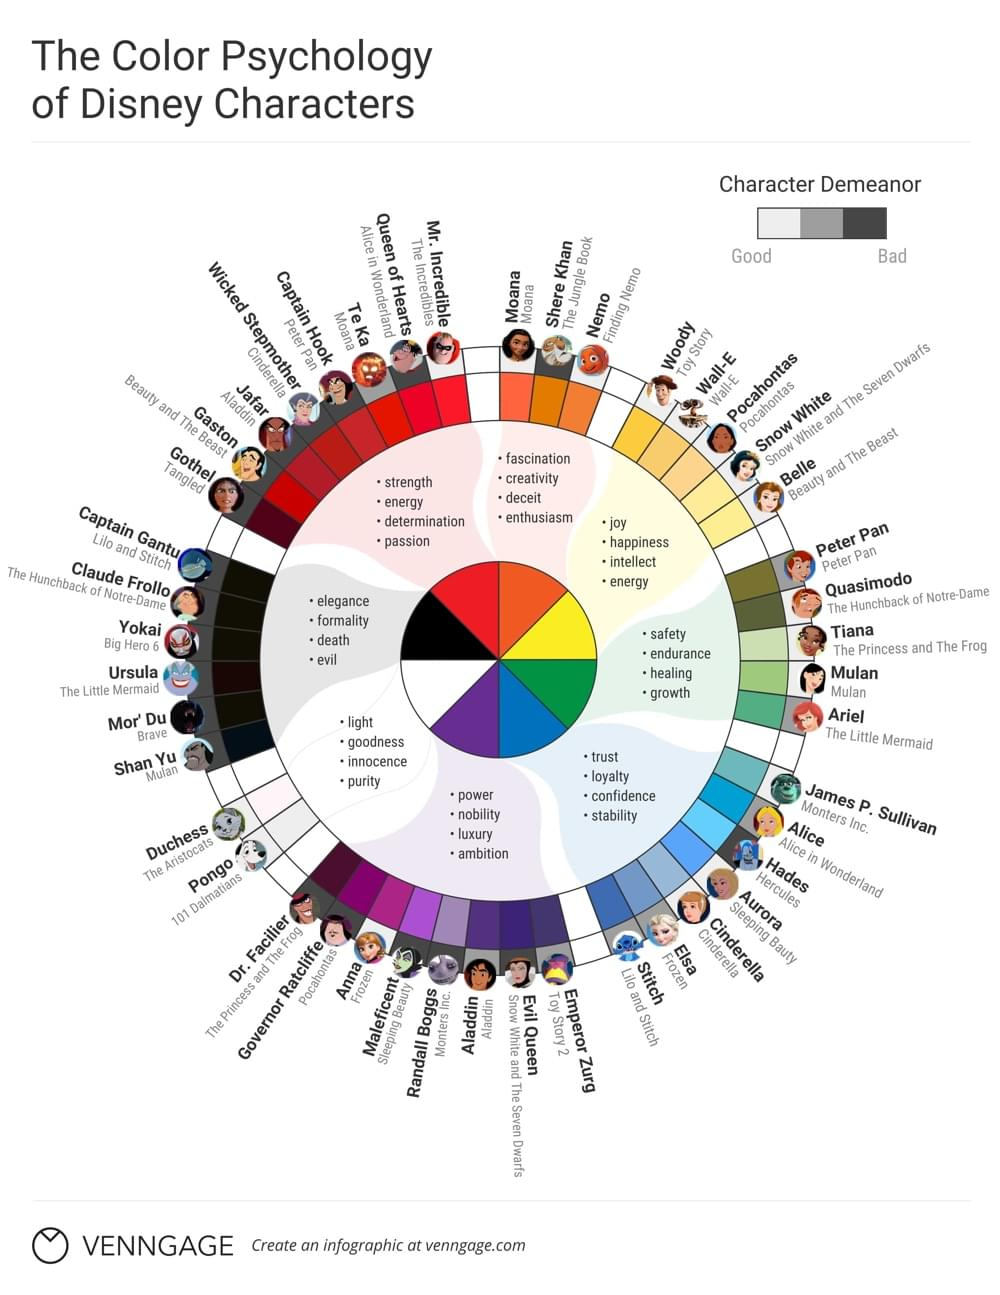 15 Color Schemes From Disney Heroes and Villains — SitePoint